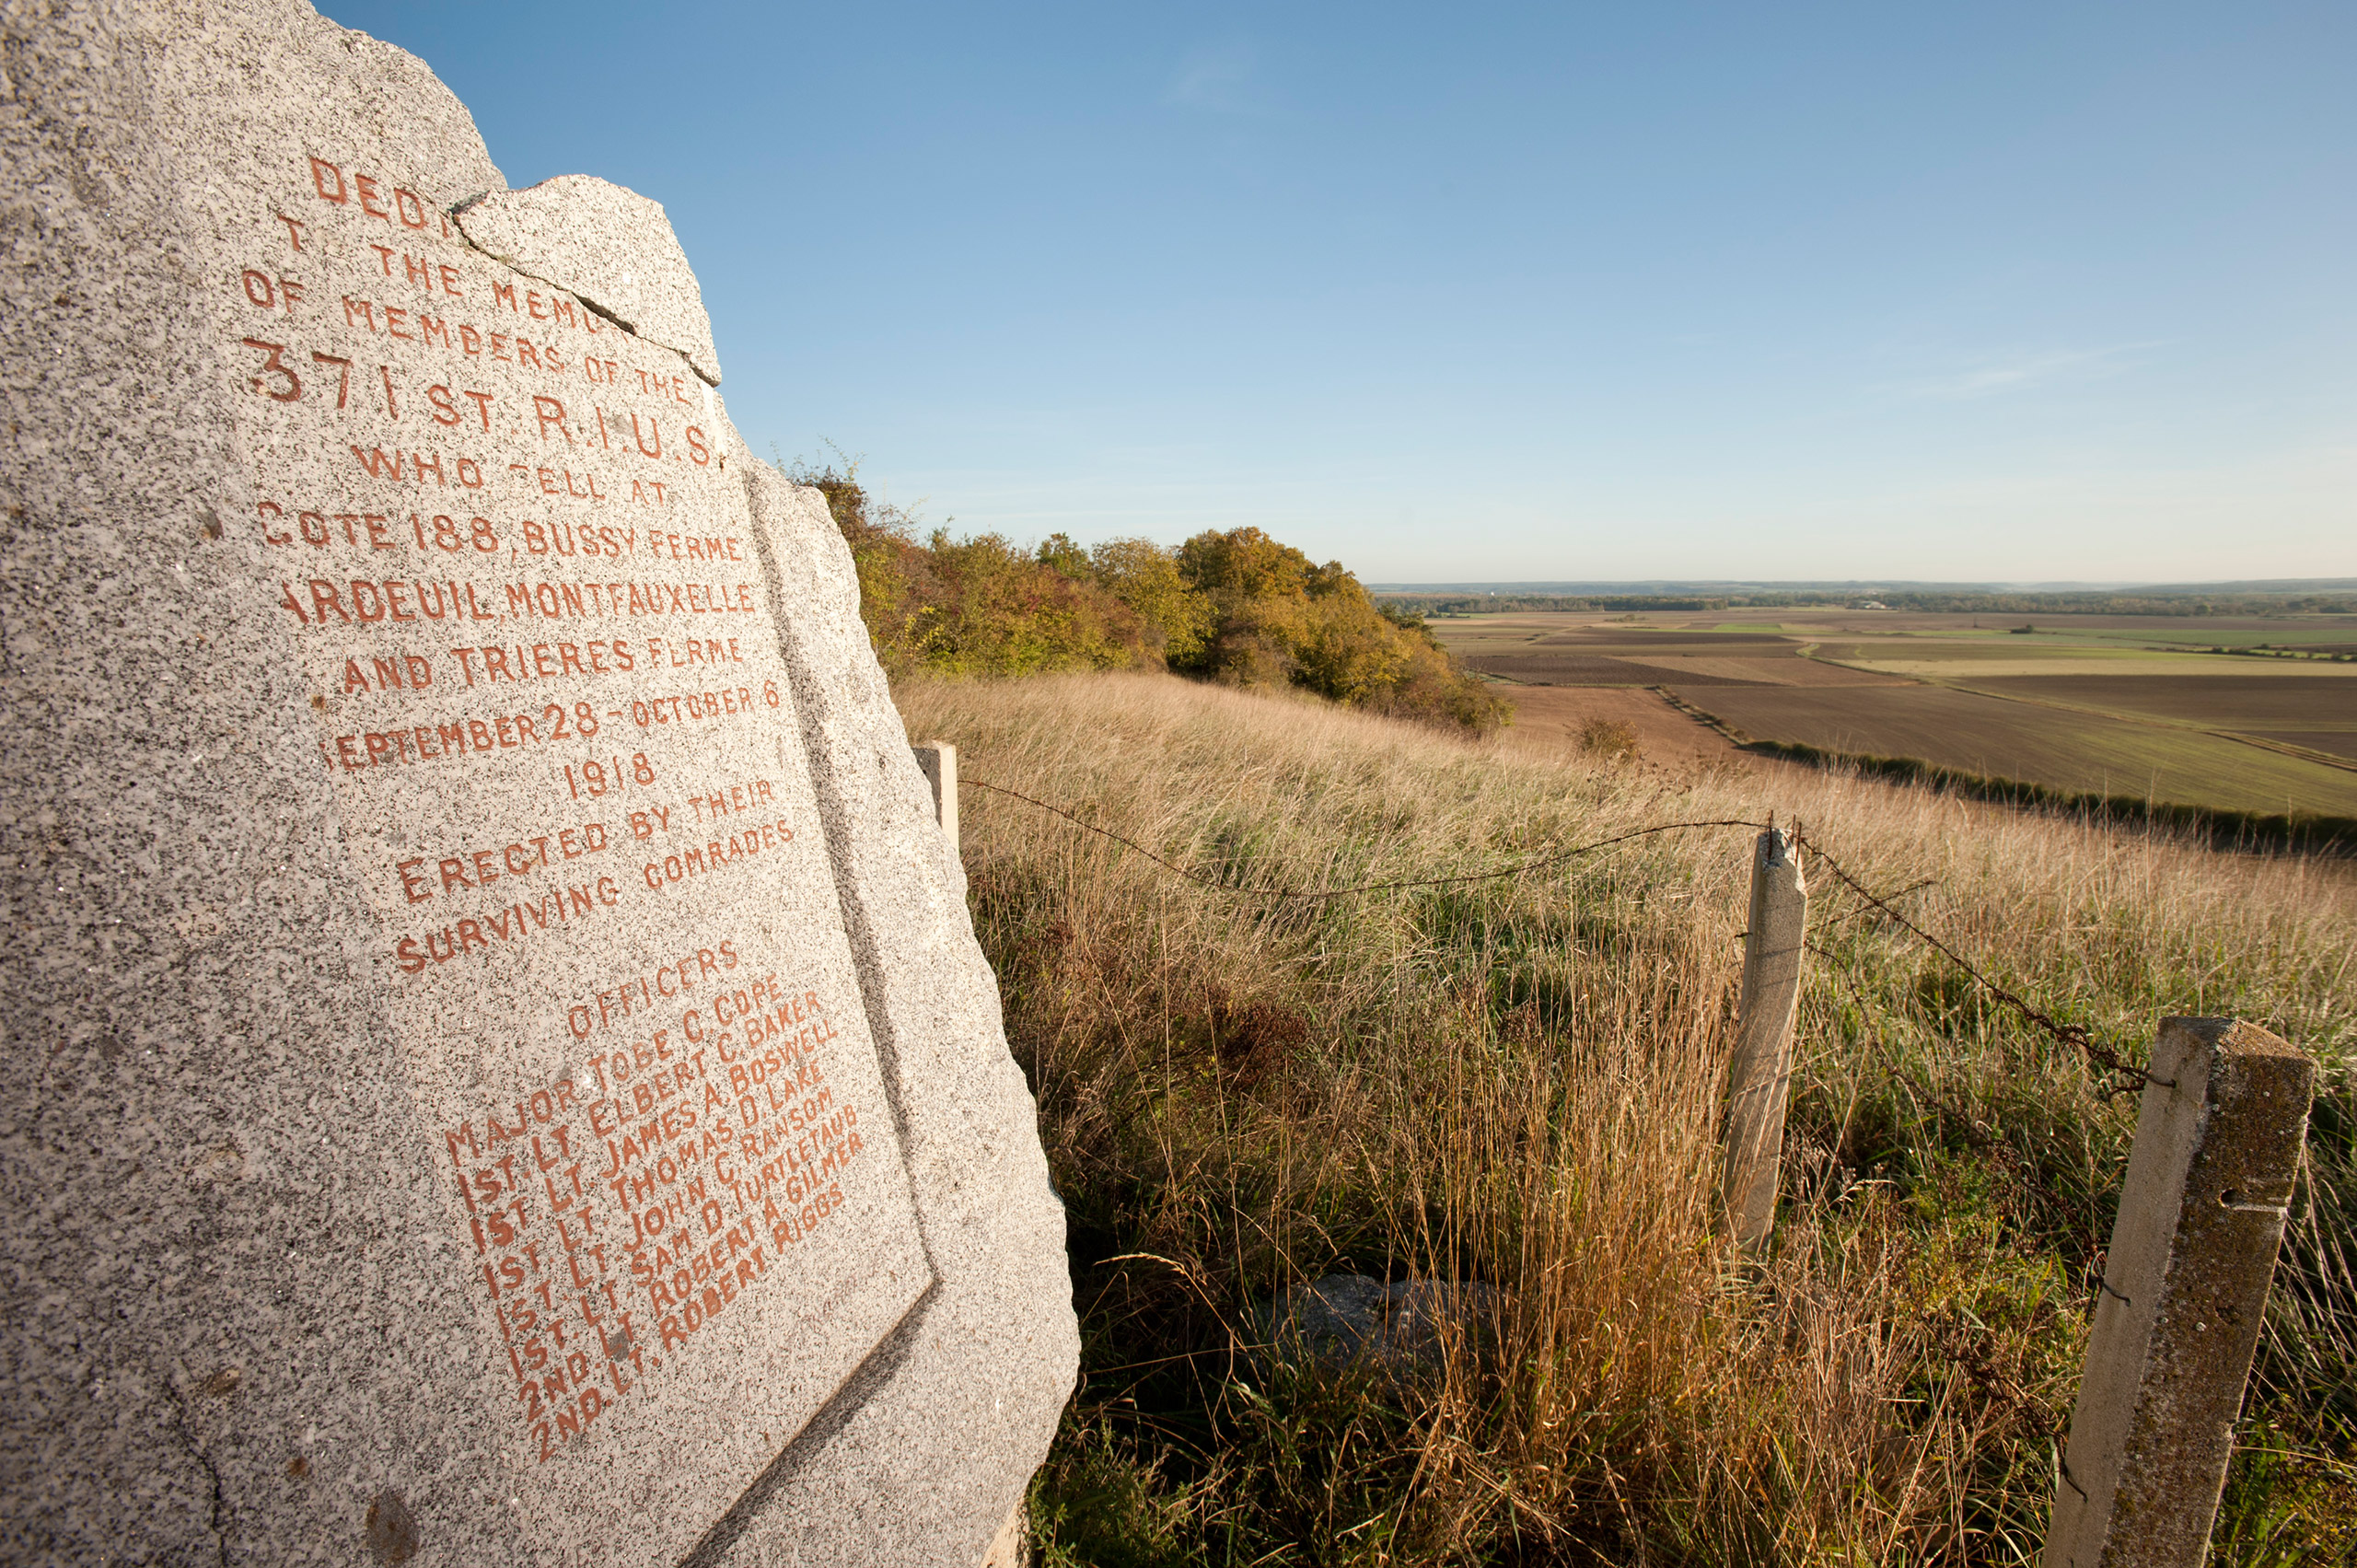 American 371RI Memorial above Bussy Farm. where Cpl. Freddie Stowers won MoH 371 Inf 93 Div. Sept. 28, 1918.